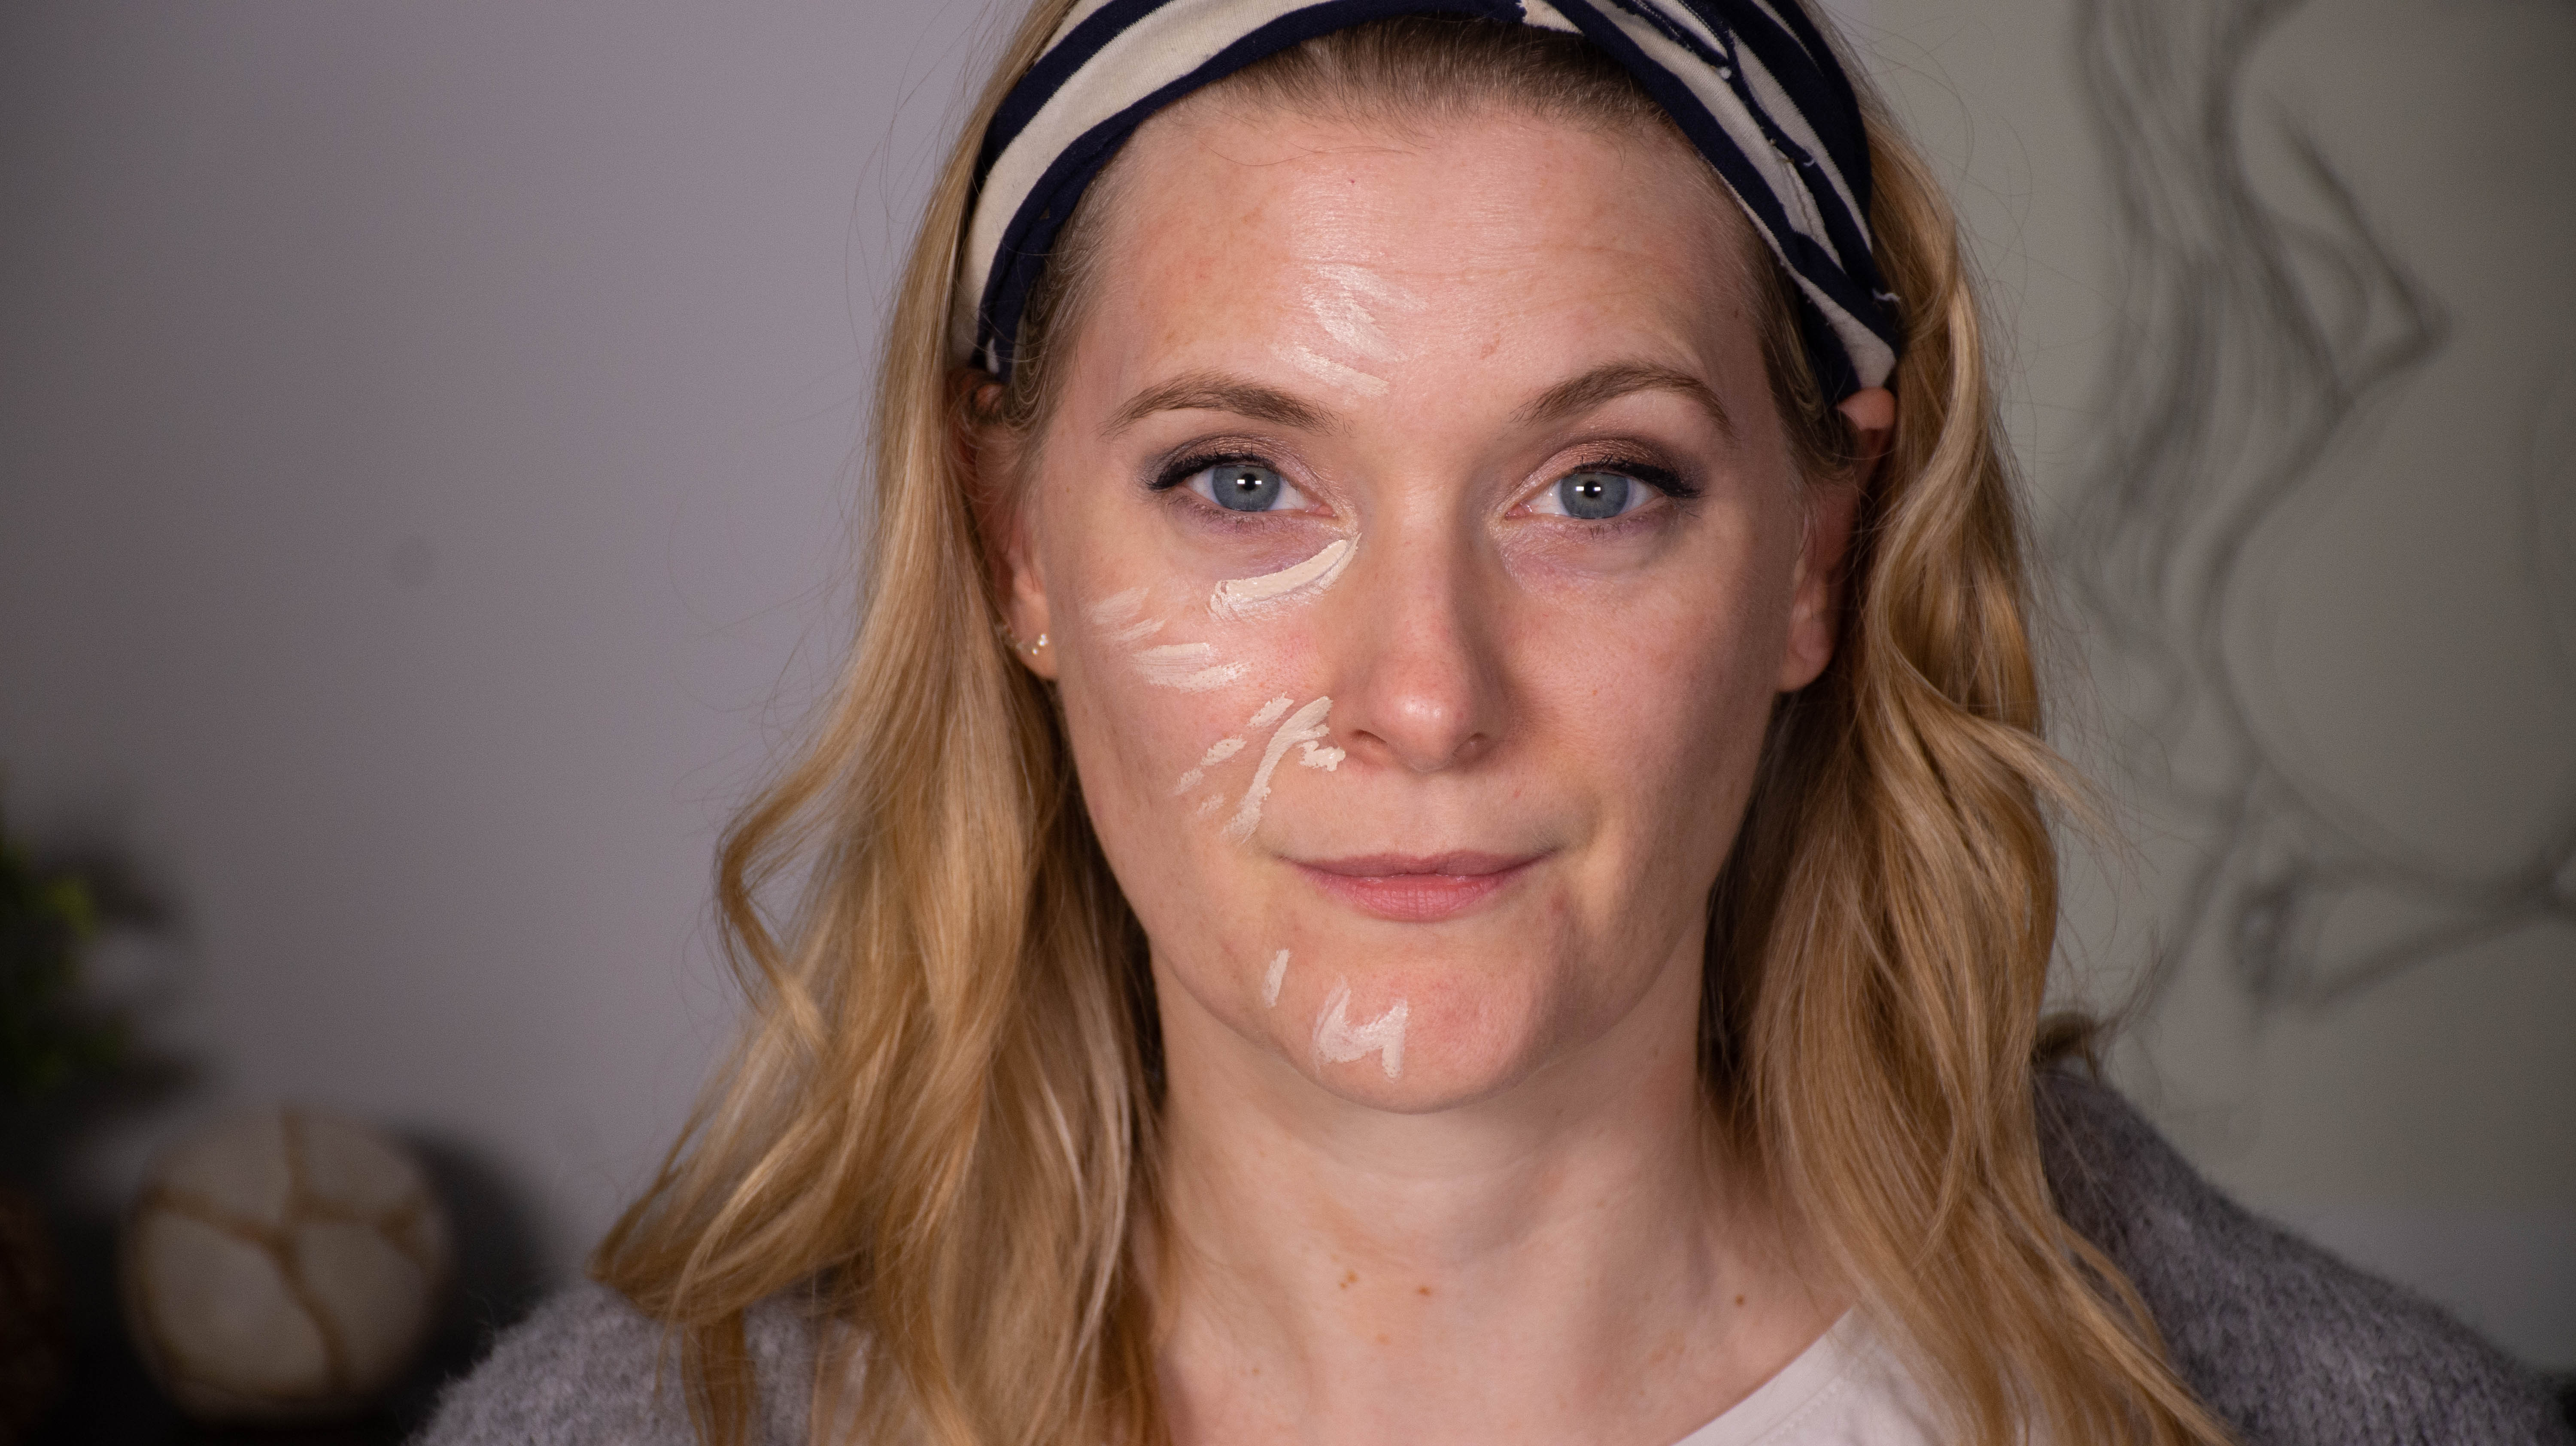 NARS Radiant Creamy Concealer on the face